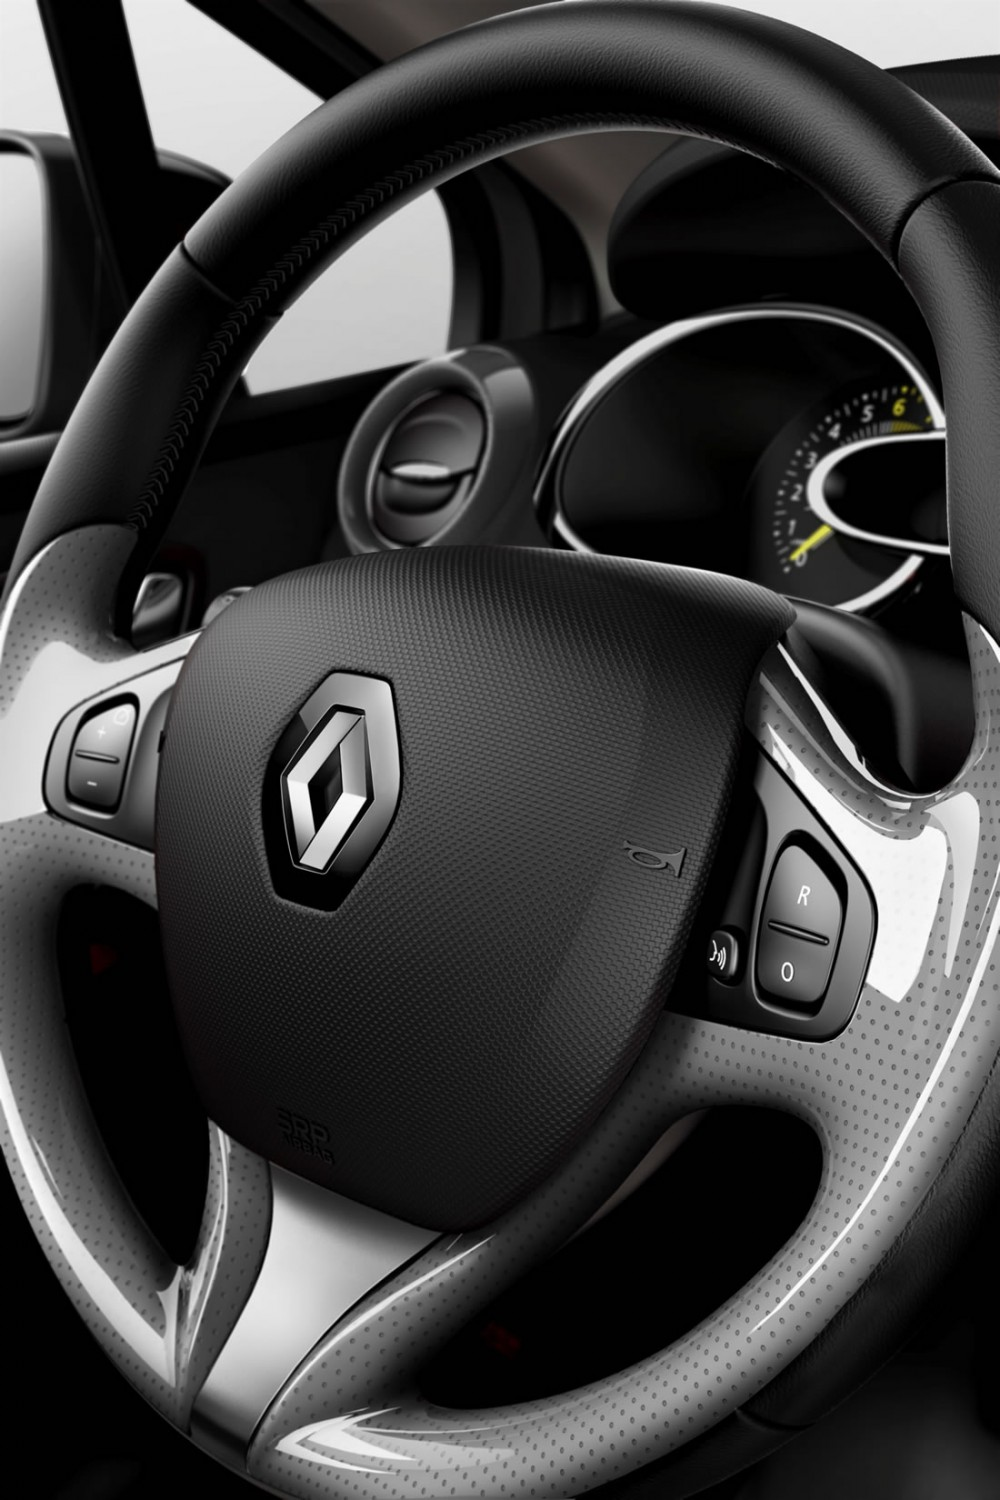 The steering wheel of the new Renault Clio 4